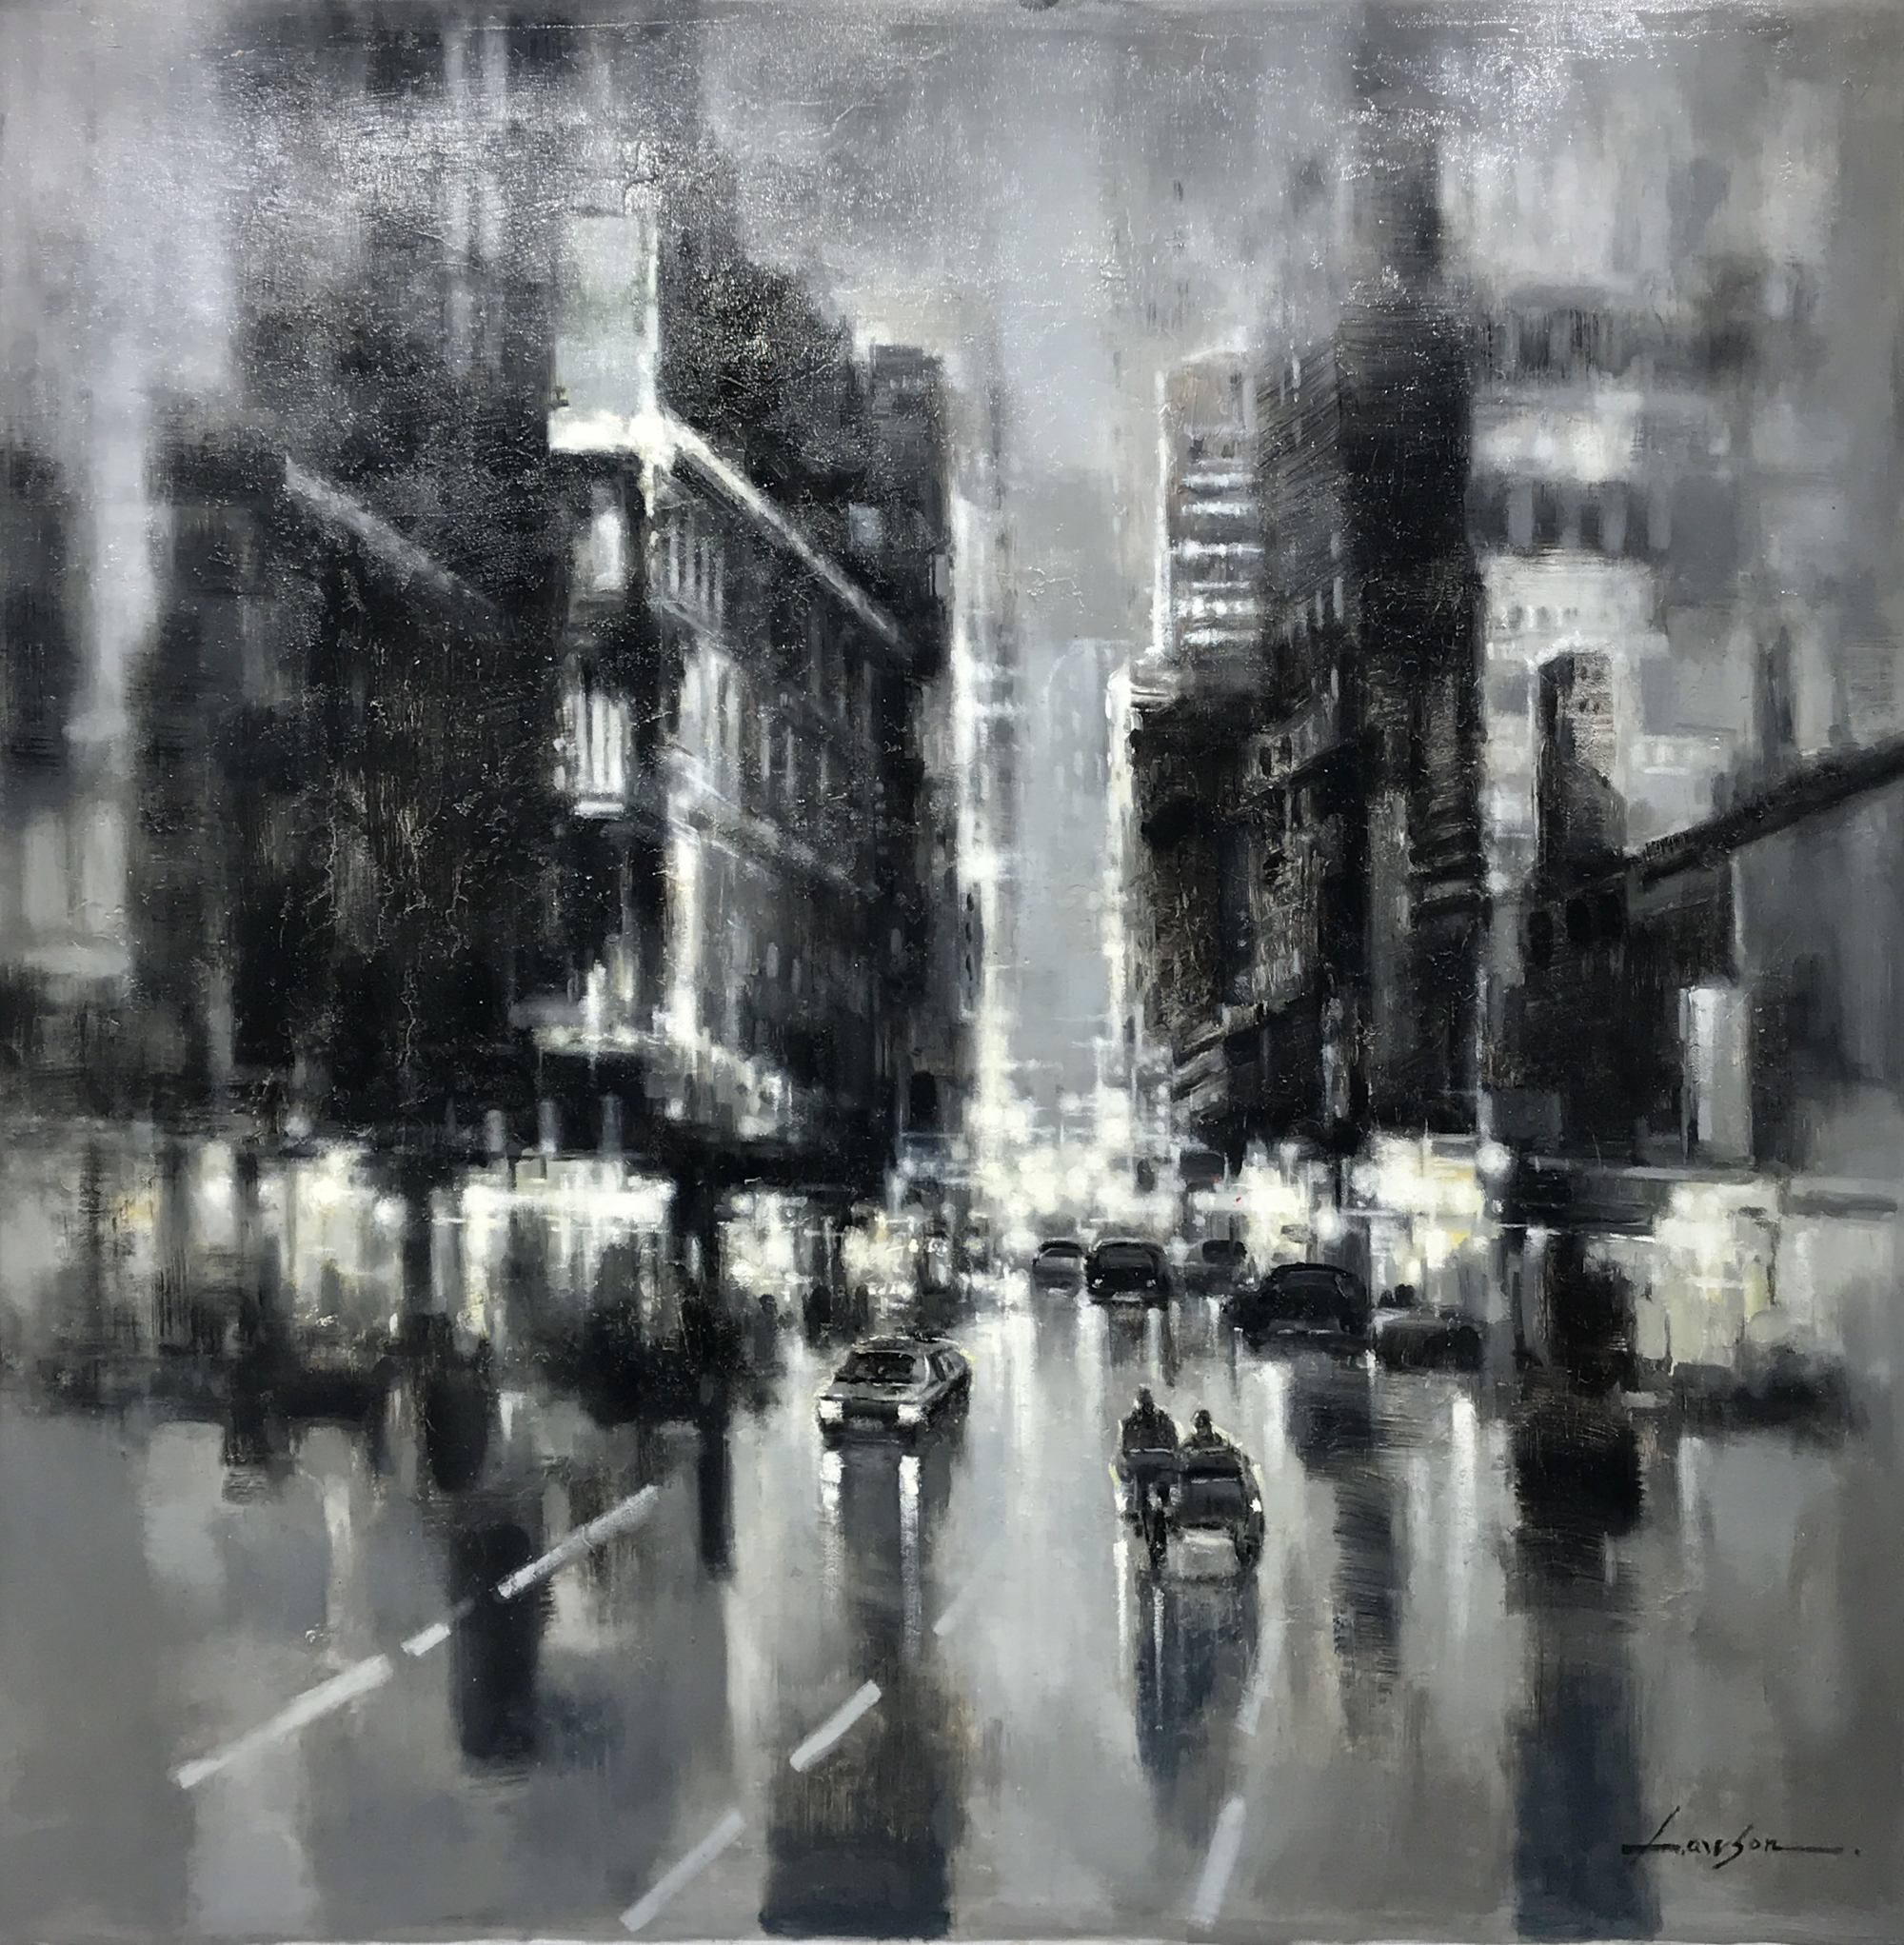 DARK CITYSCAPE WITH SIDECAR by LAWSON